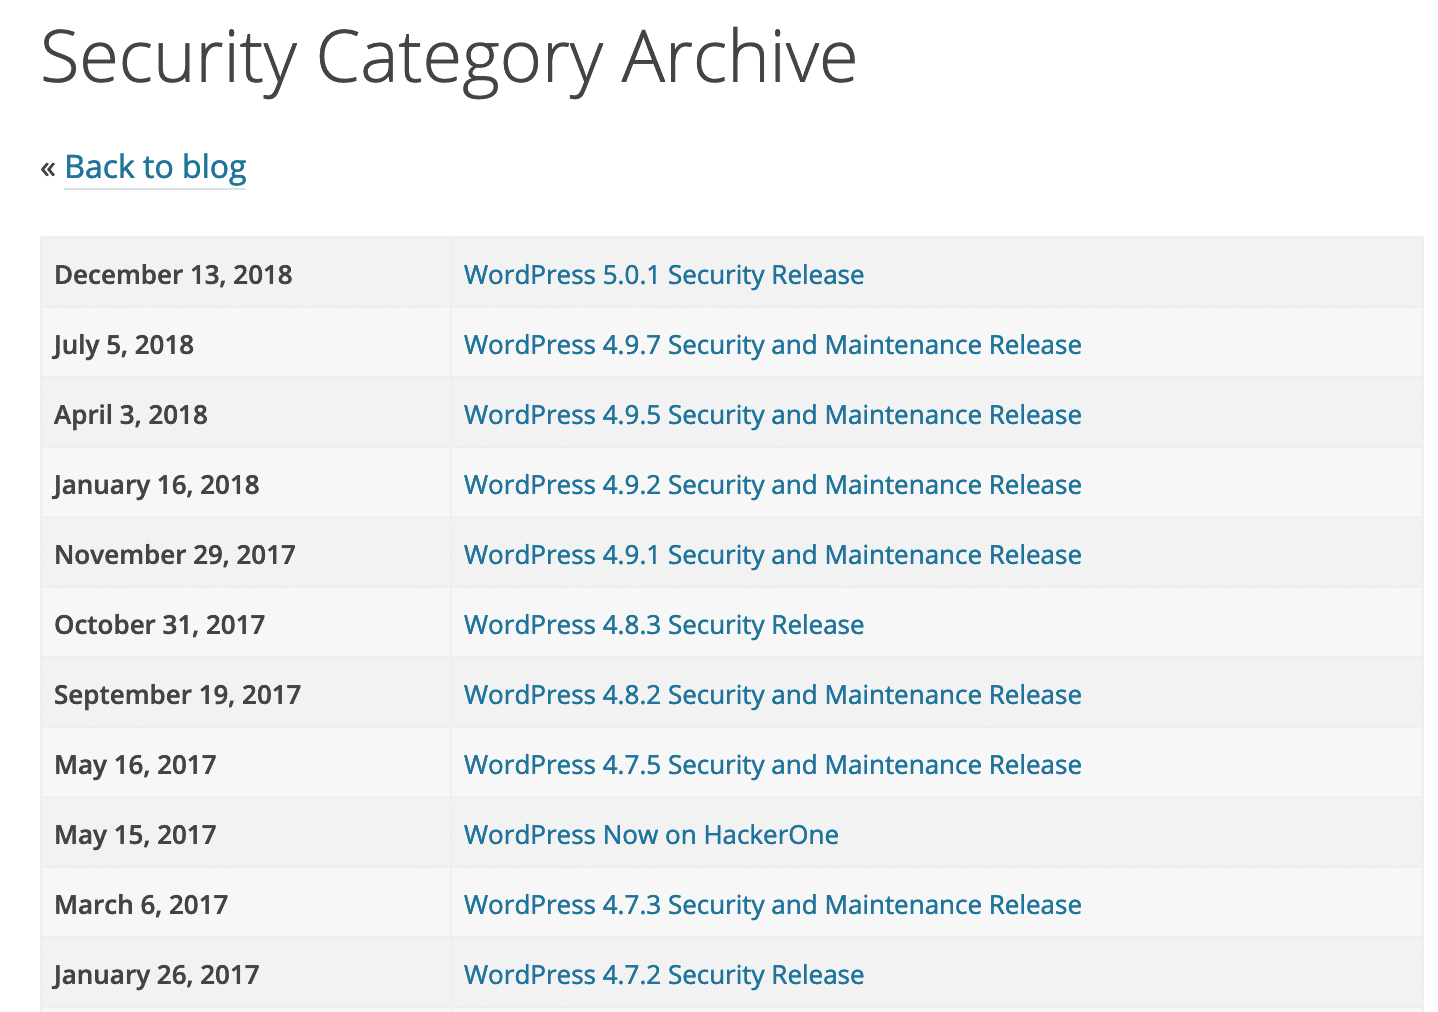 Archive de sécurité WordPress